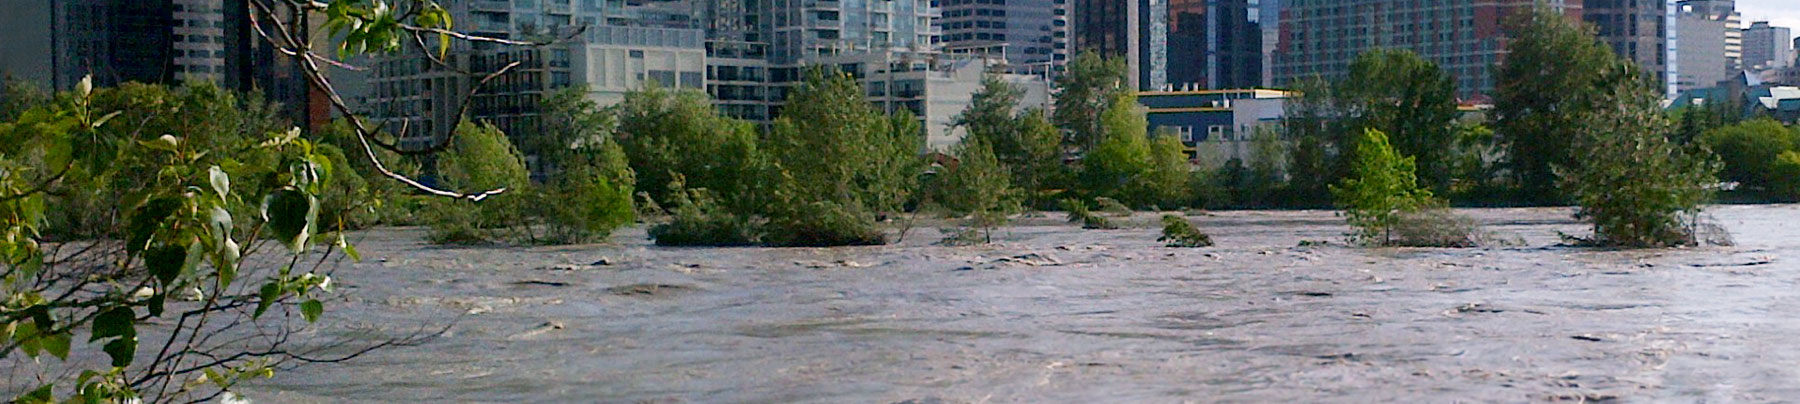 Calgary Flood image